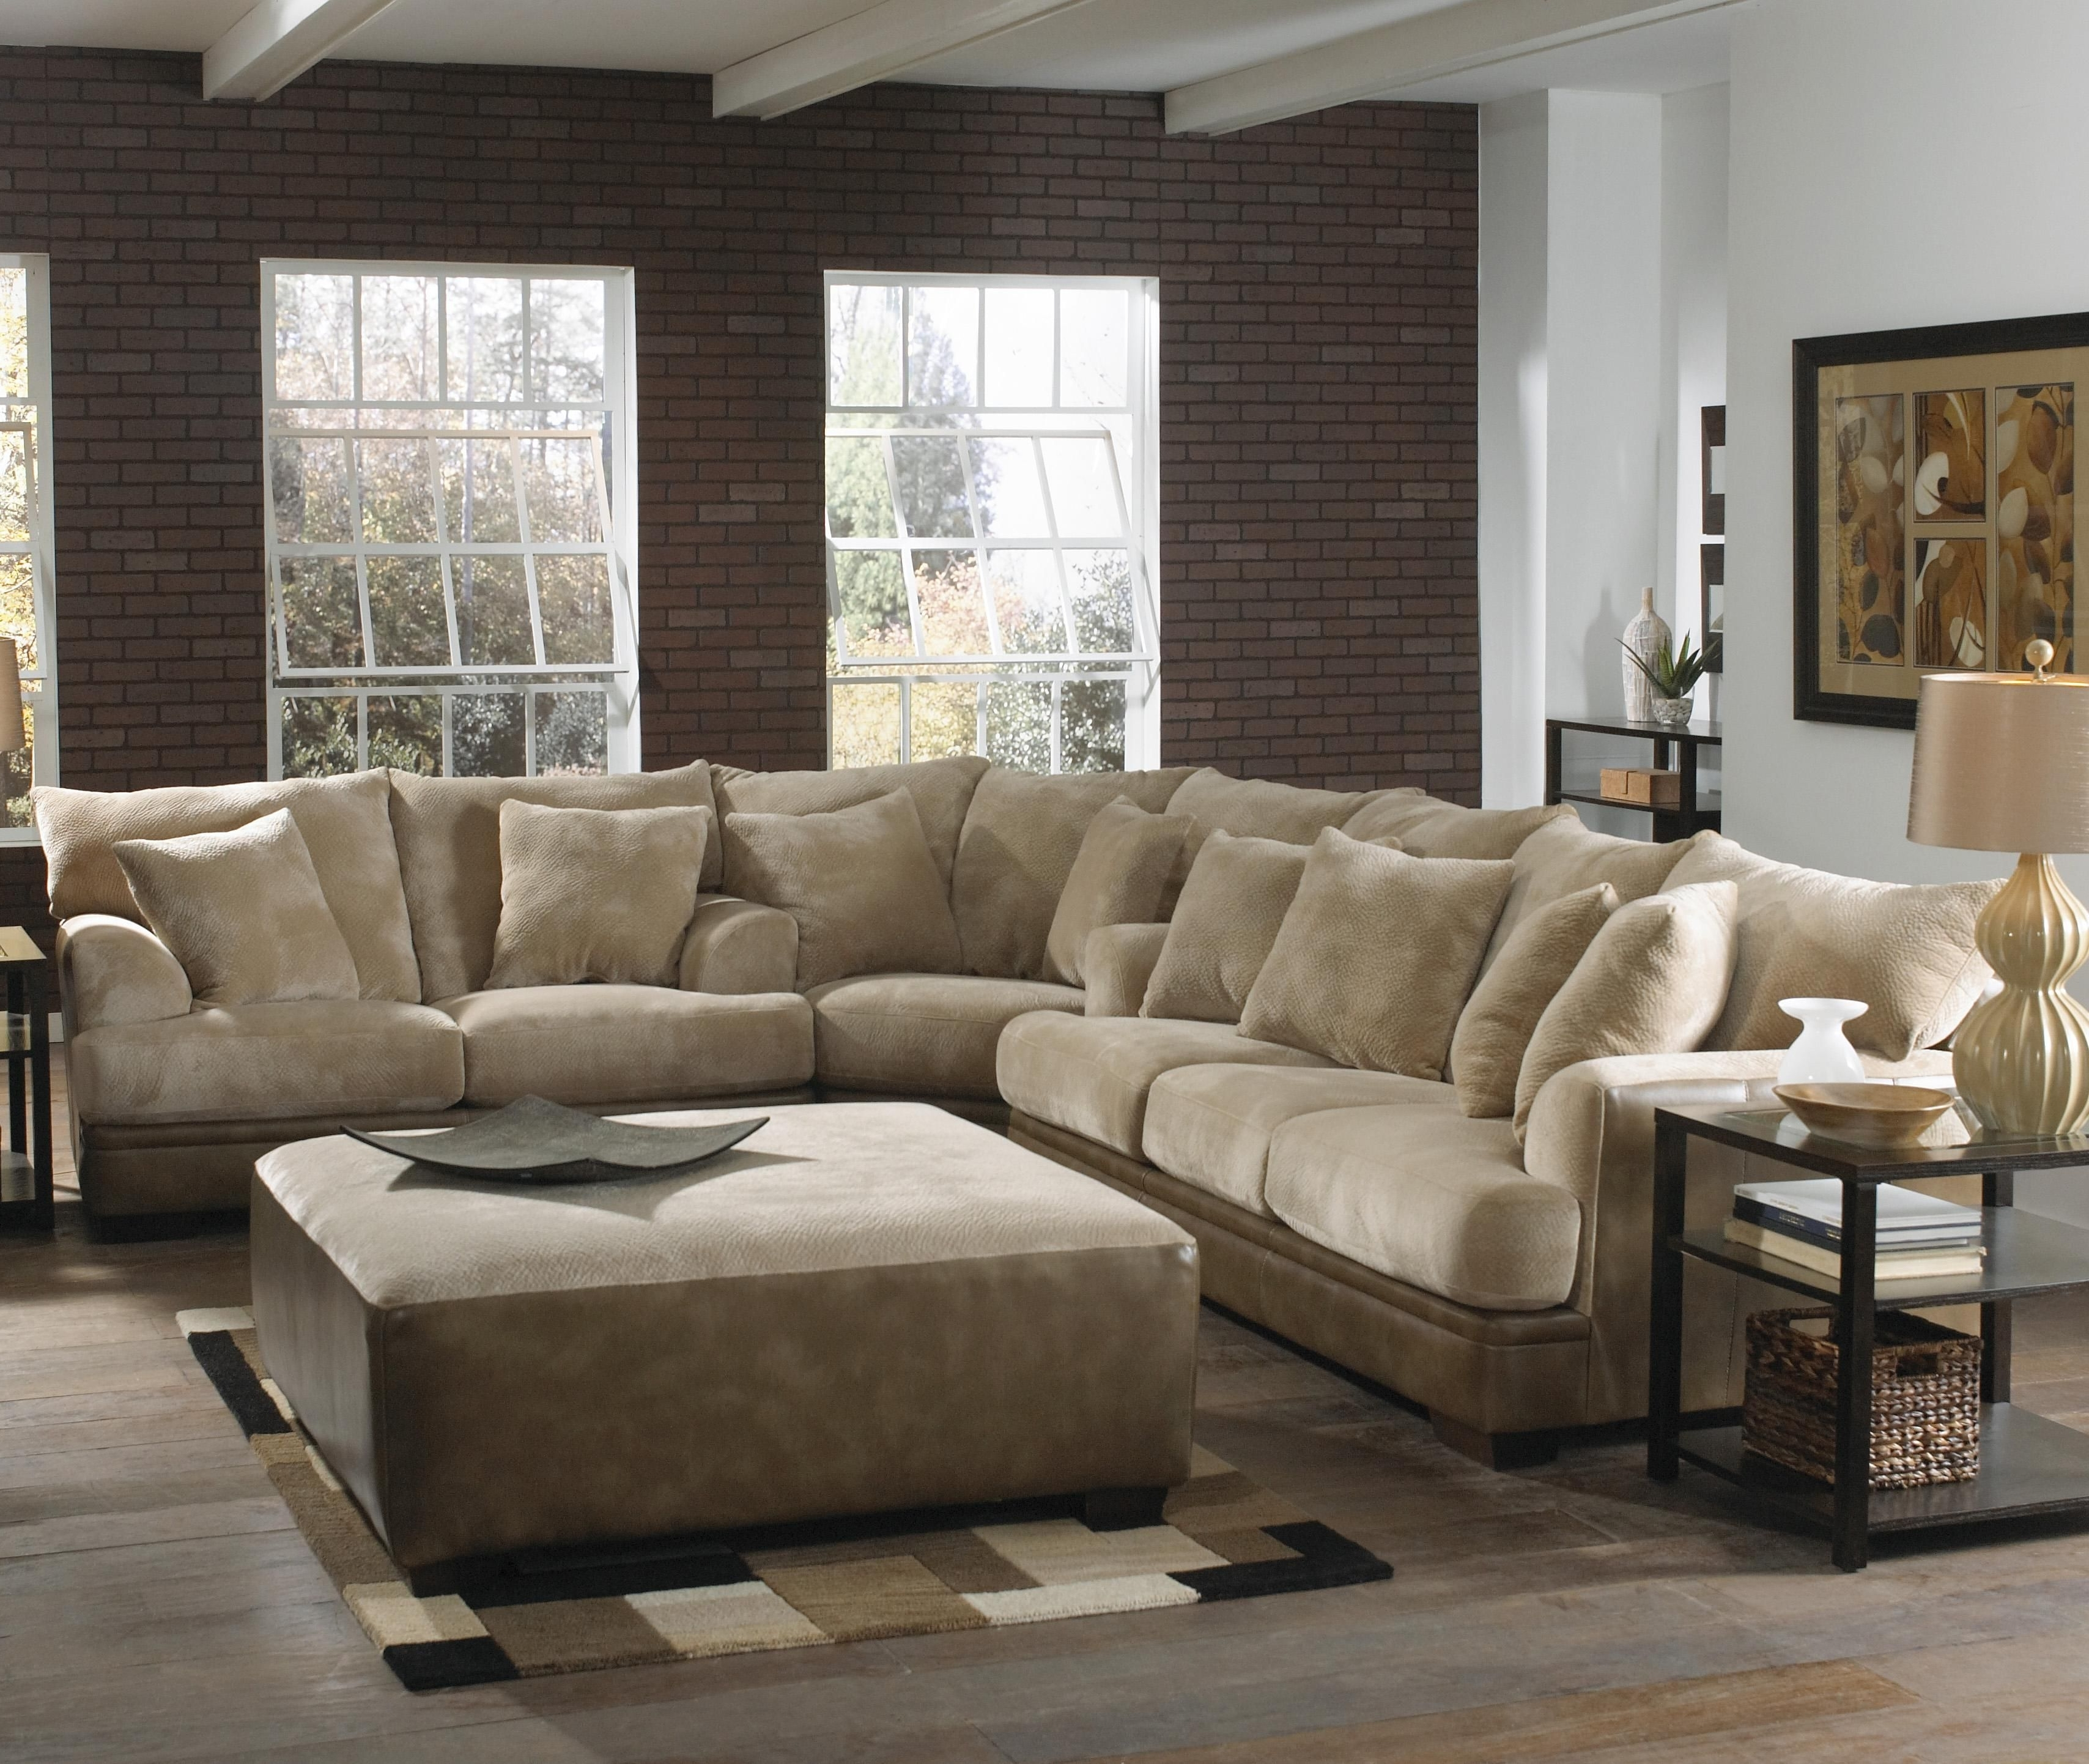 Latest Barkley Large L Shaped Sectional Sofa With Right Side Loveseat For Jackson Ms Sectional Sofas (View 10 of 15)